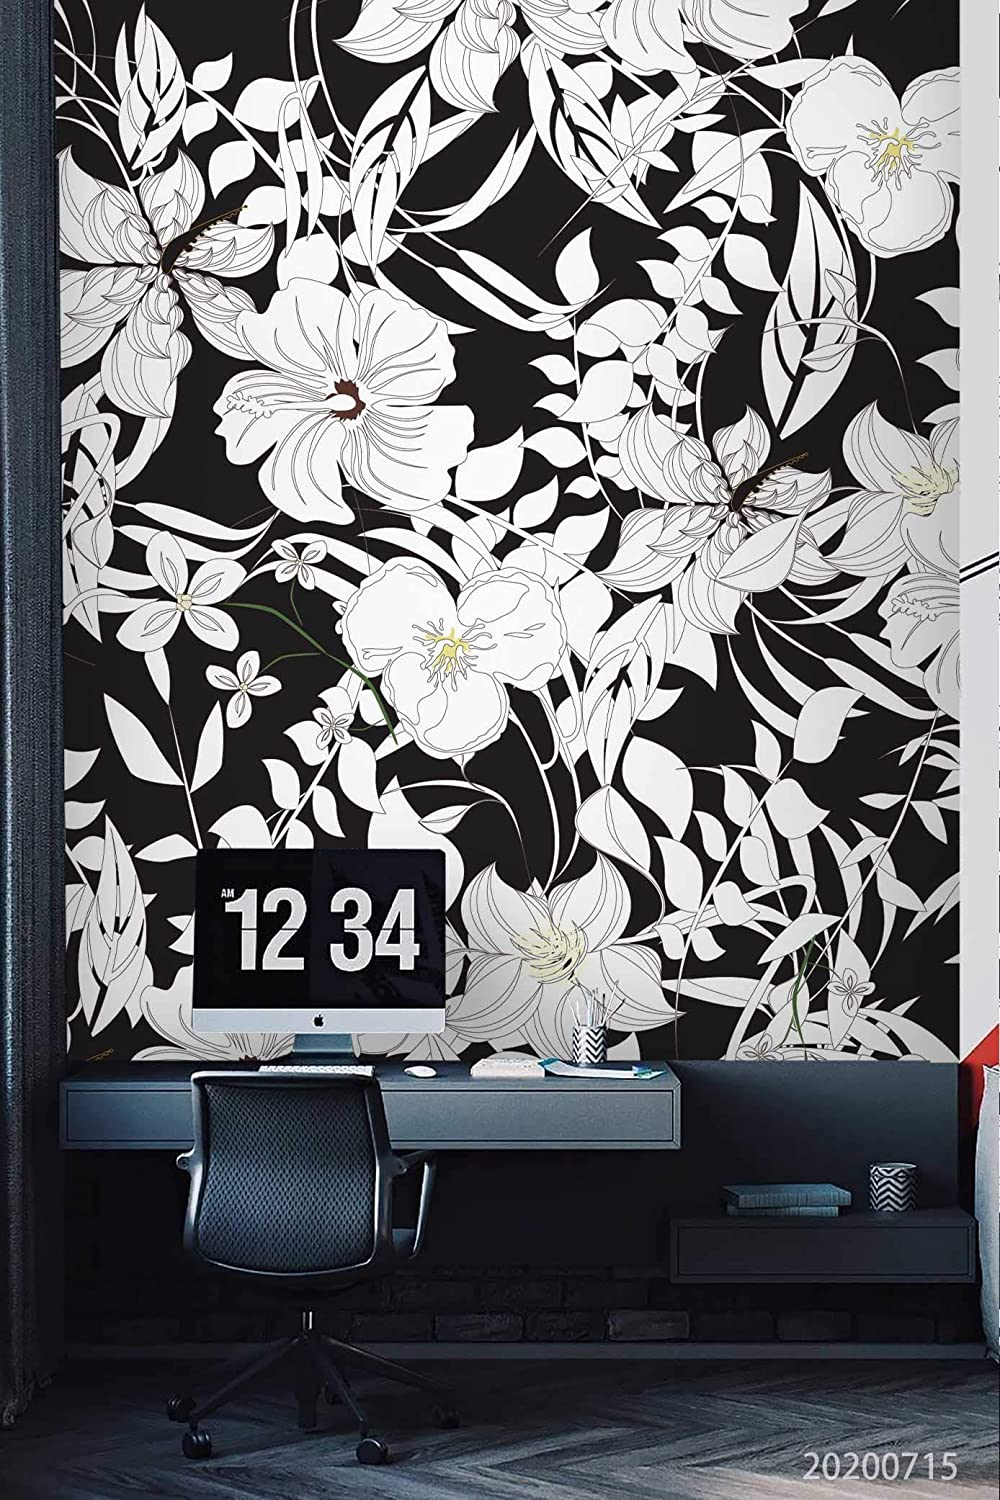 3D White Floral Wallpaper Wall Mural | Self Adhesive Removable Wallpaper Feature Wall Deco Photo Mural YQ 68 (Premium Non-Woven Paper(Non- Pasted), 82